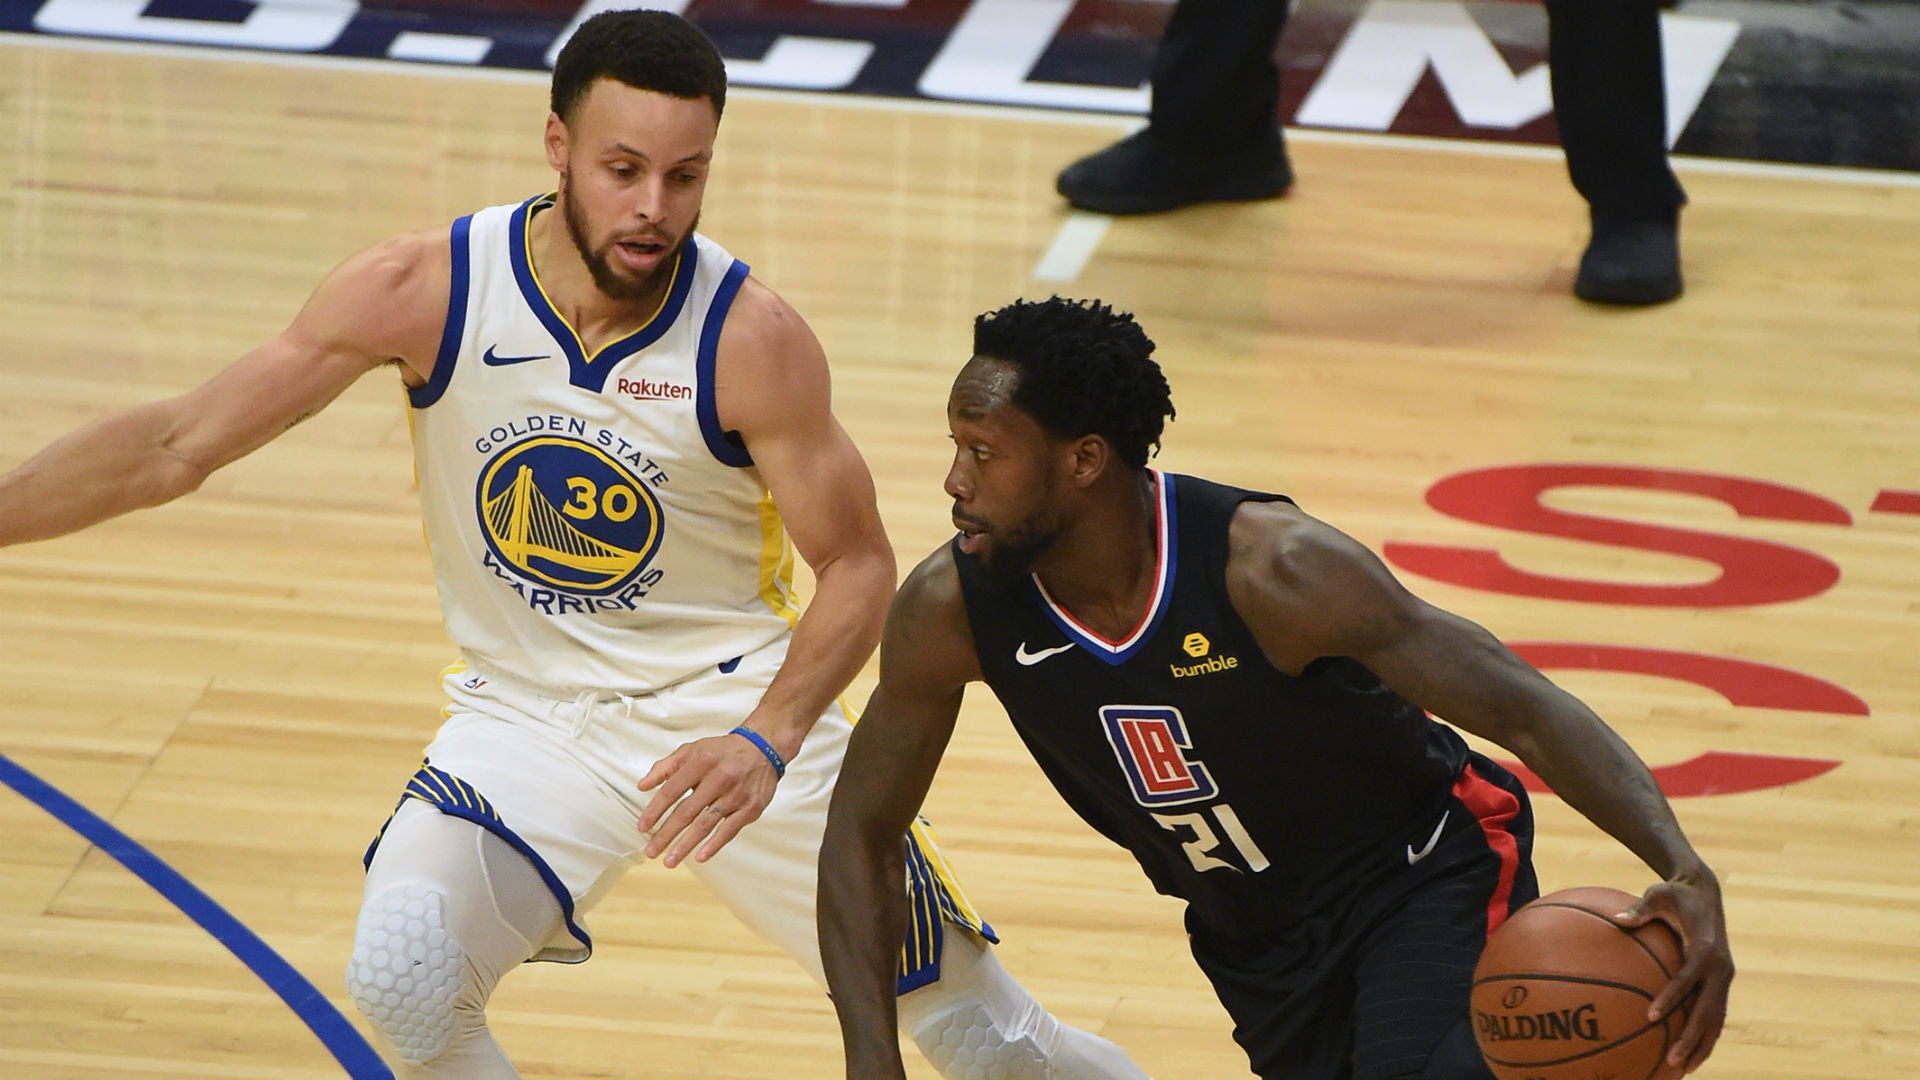 Nba Playoffs 2019 Live Updates Highlights And More From